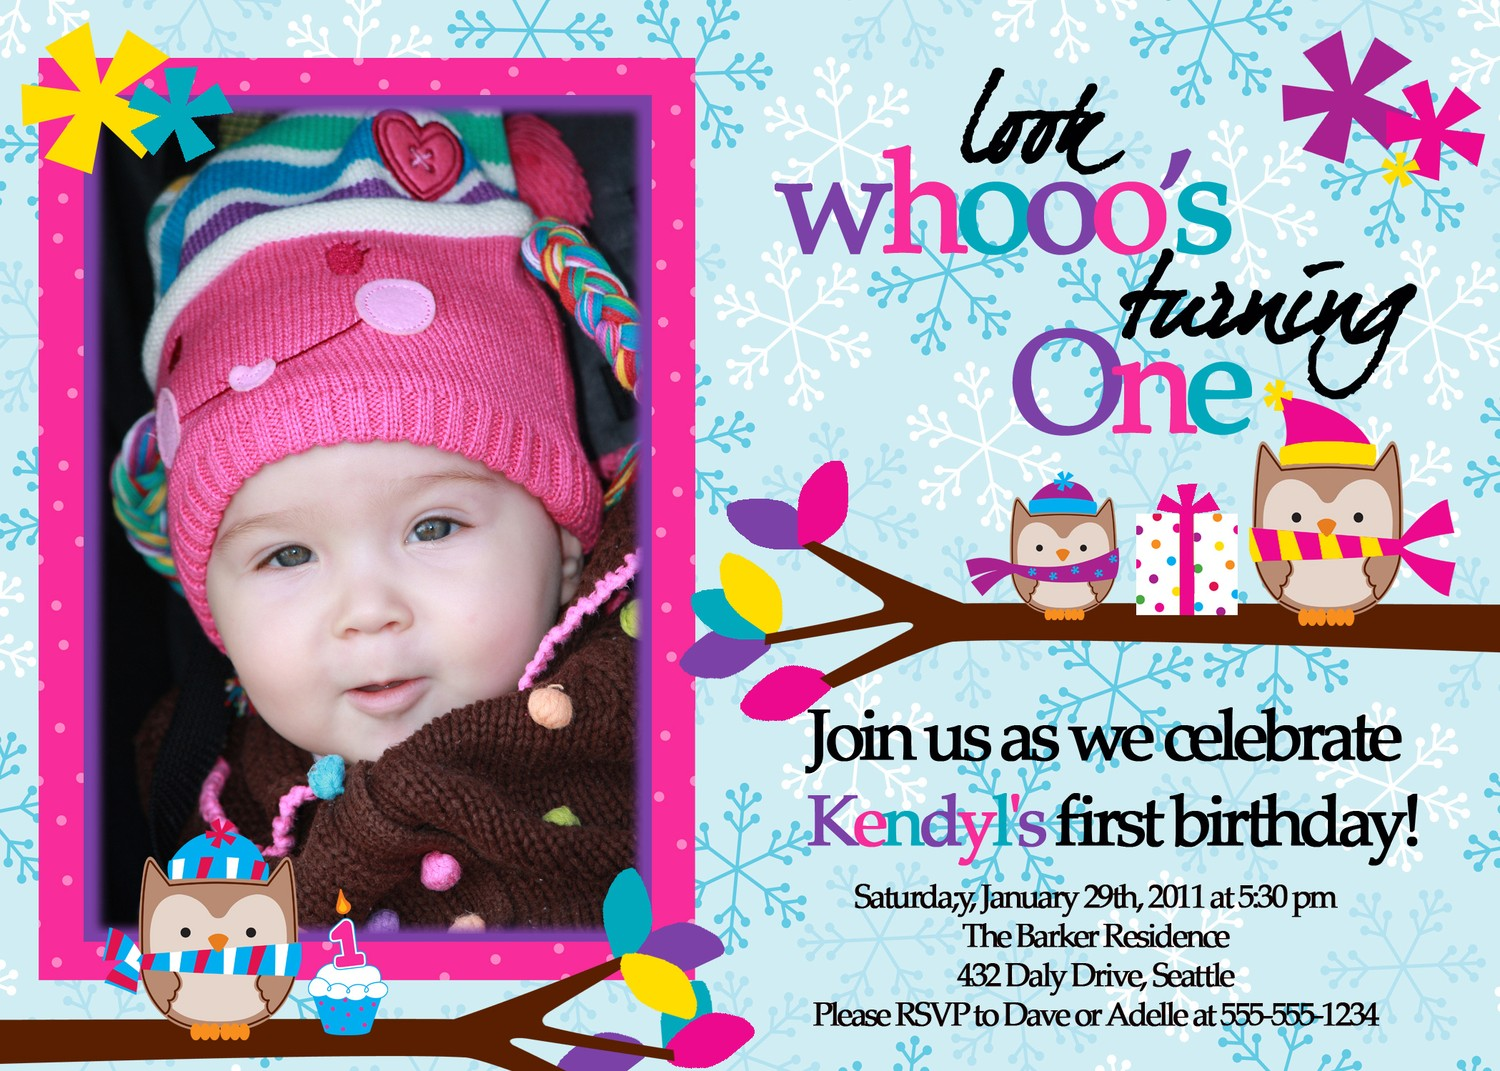 first birthday invitation template india%0A salutation for cover letter when name is unknown